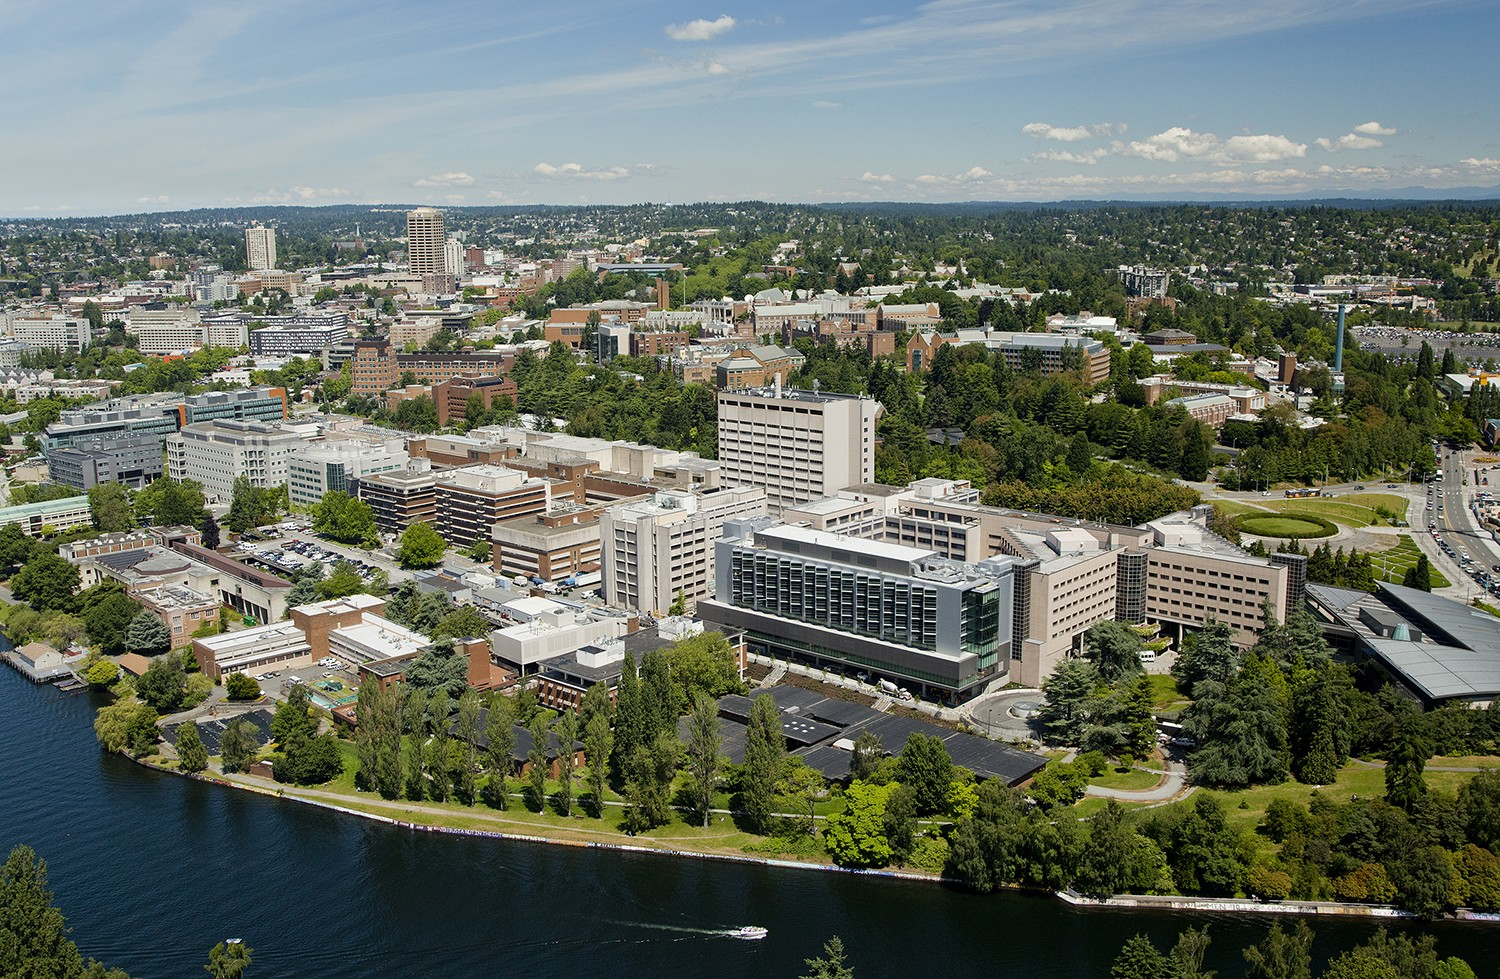 University of Washington Medical Center. Photo: Clare McLean/UW Medicine.